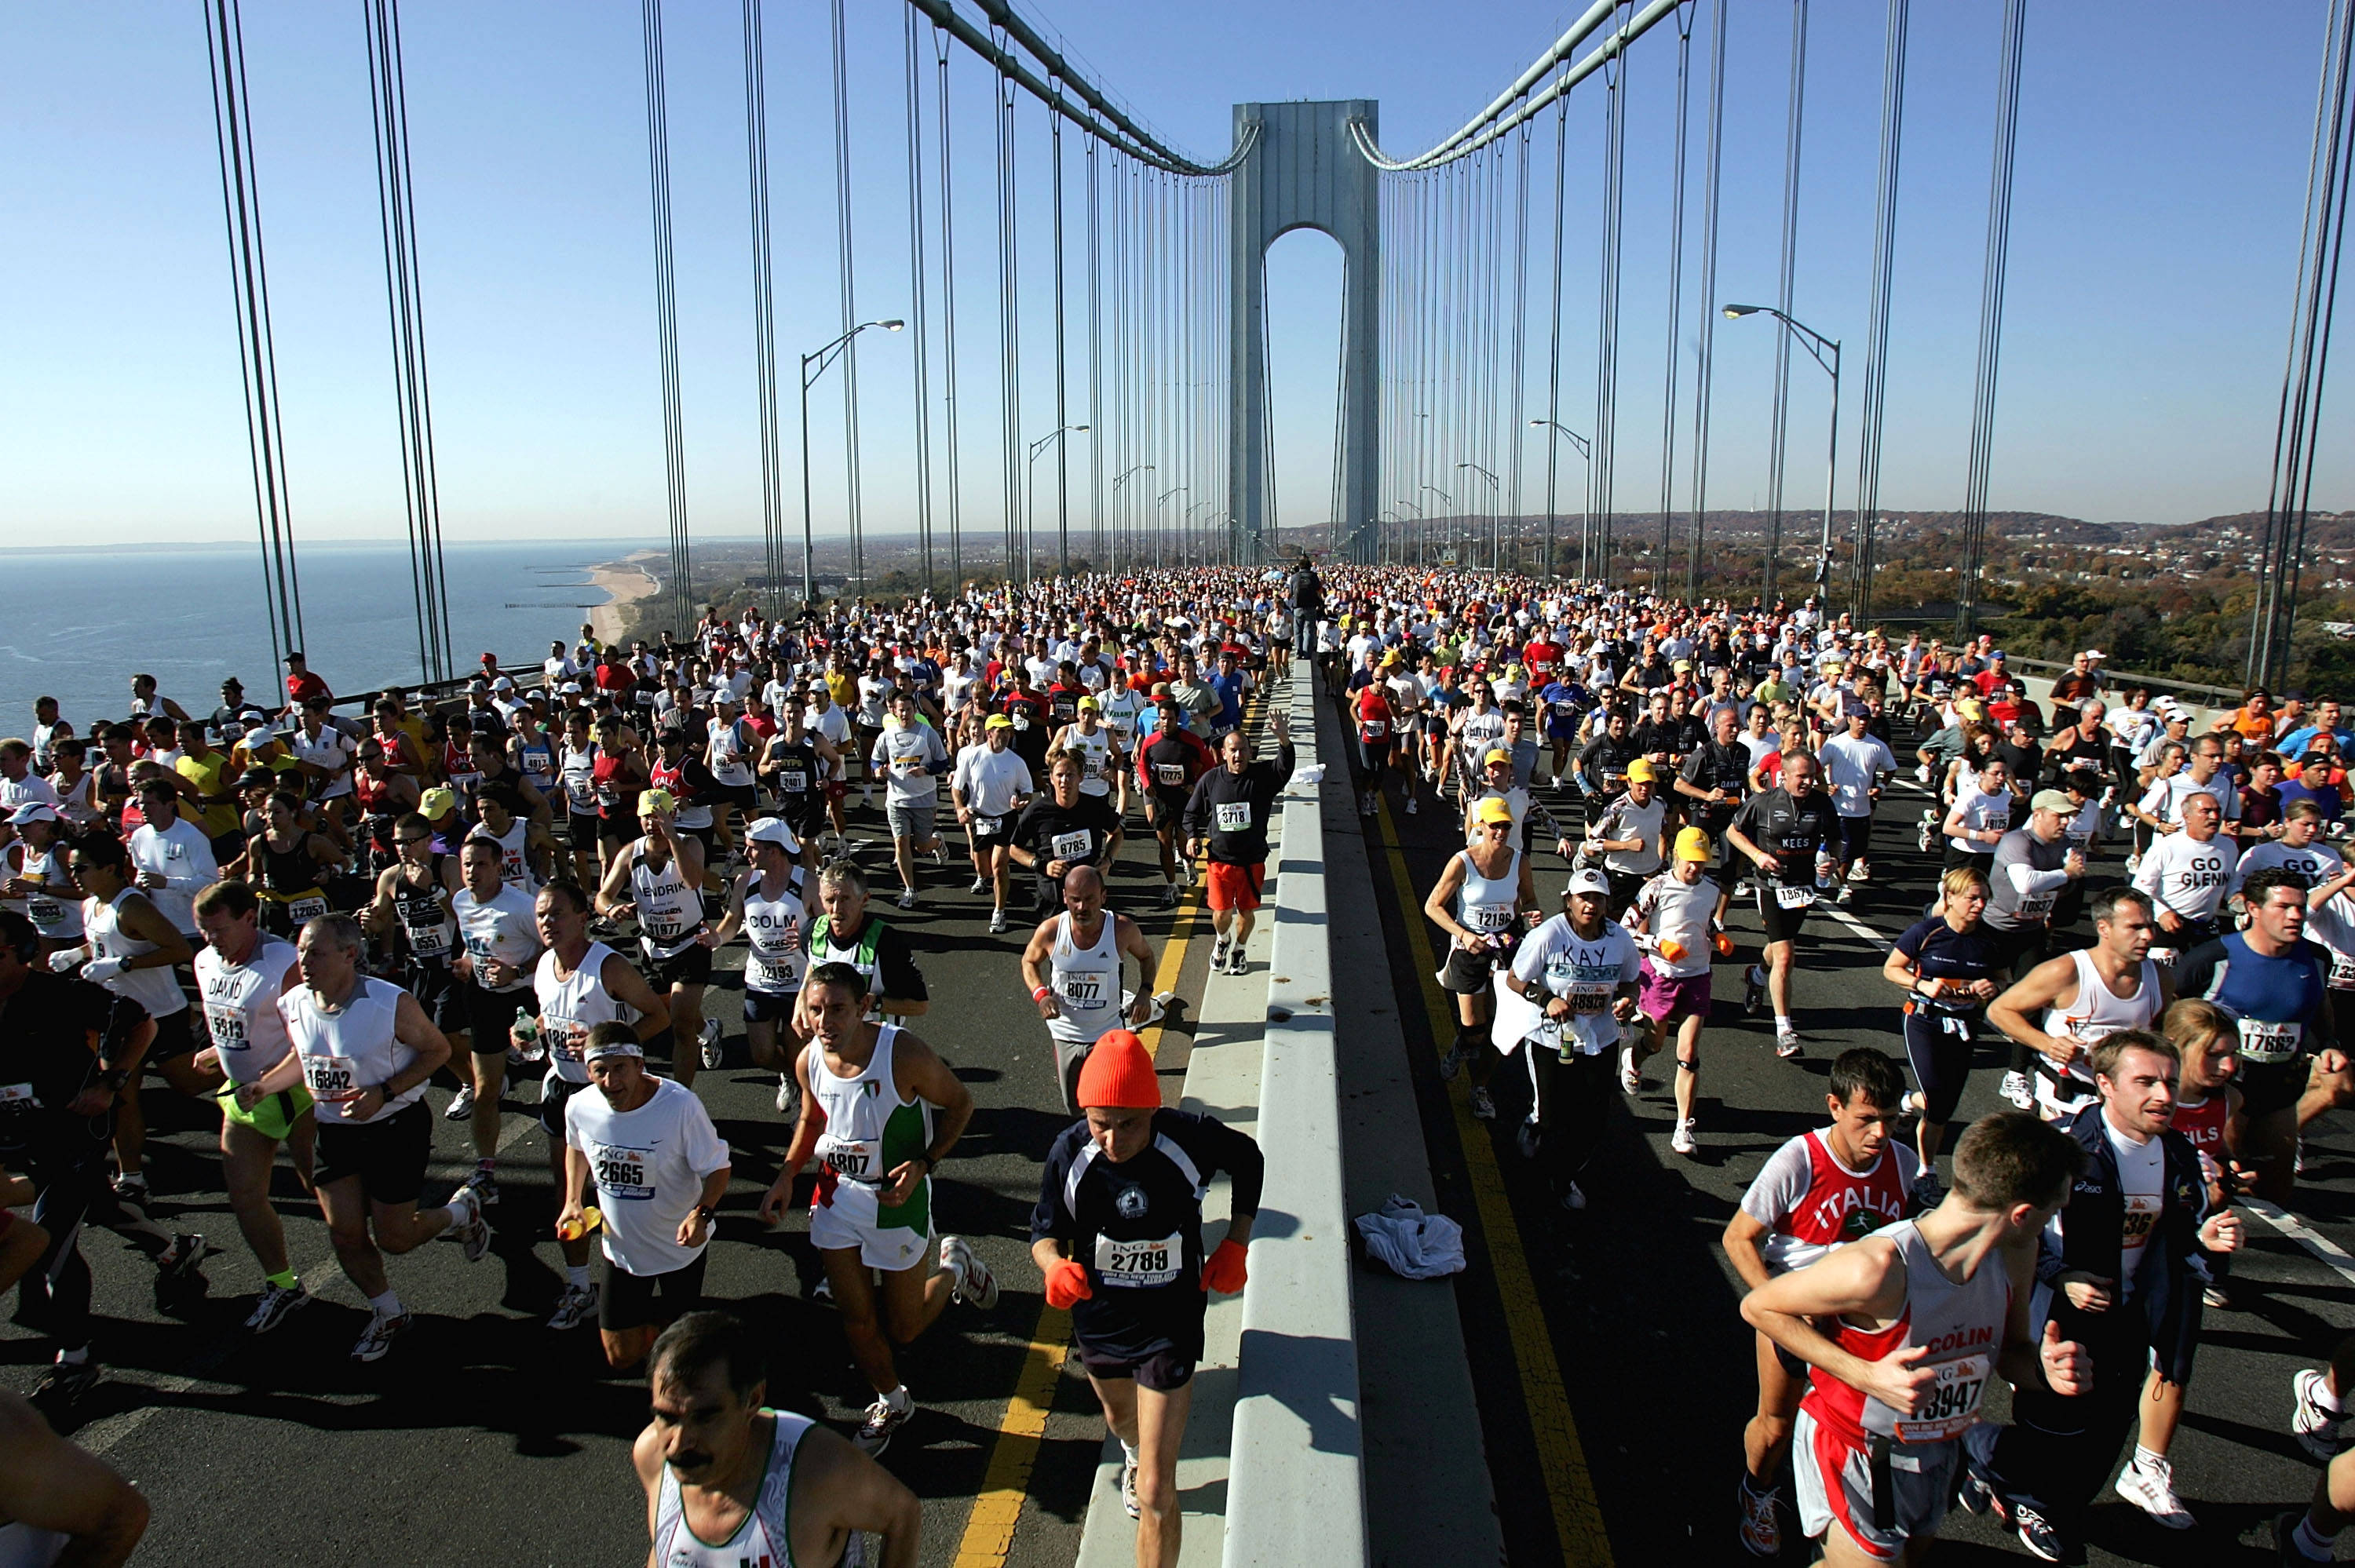 Maratona di New York 2016 Streaming: dove vederla in diretta tv?